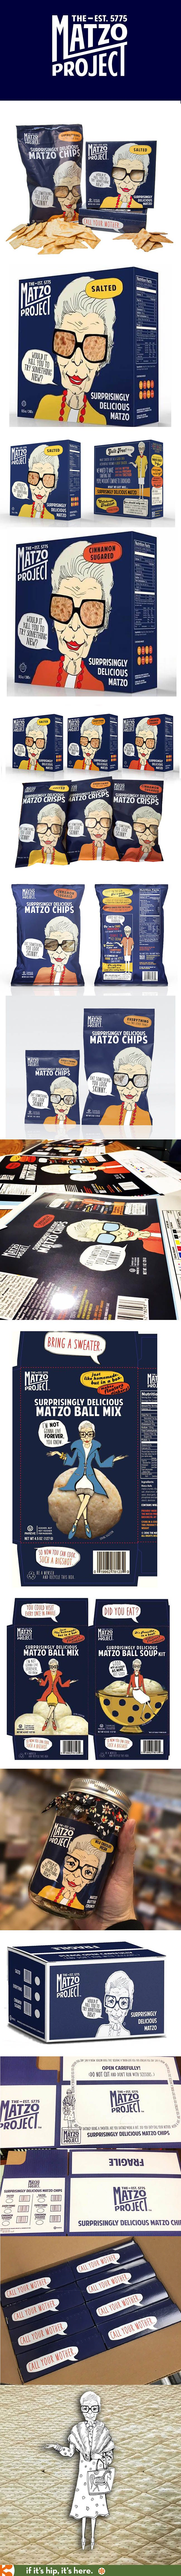 The packaging and positioning for The Matzo Project products is simply adorable!